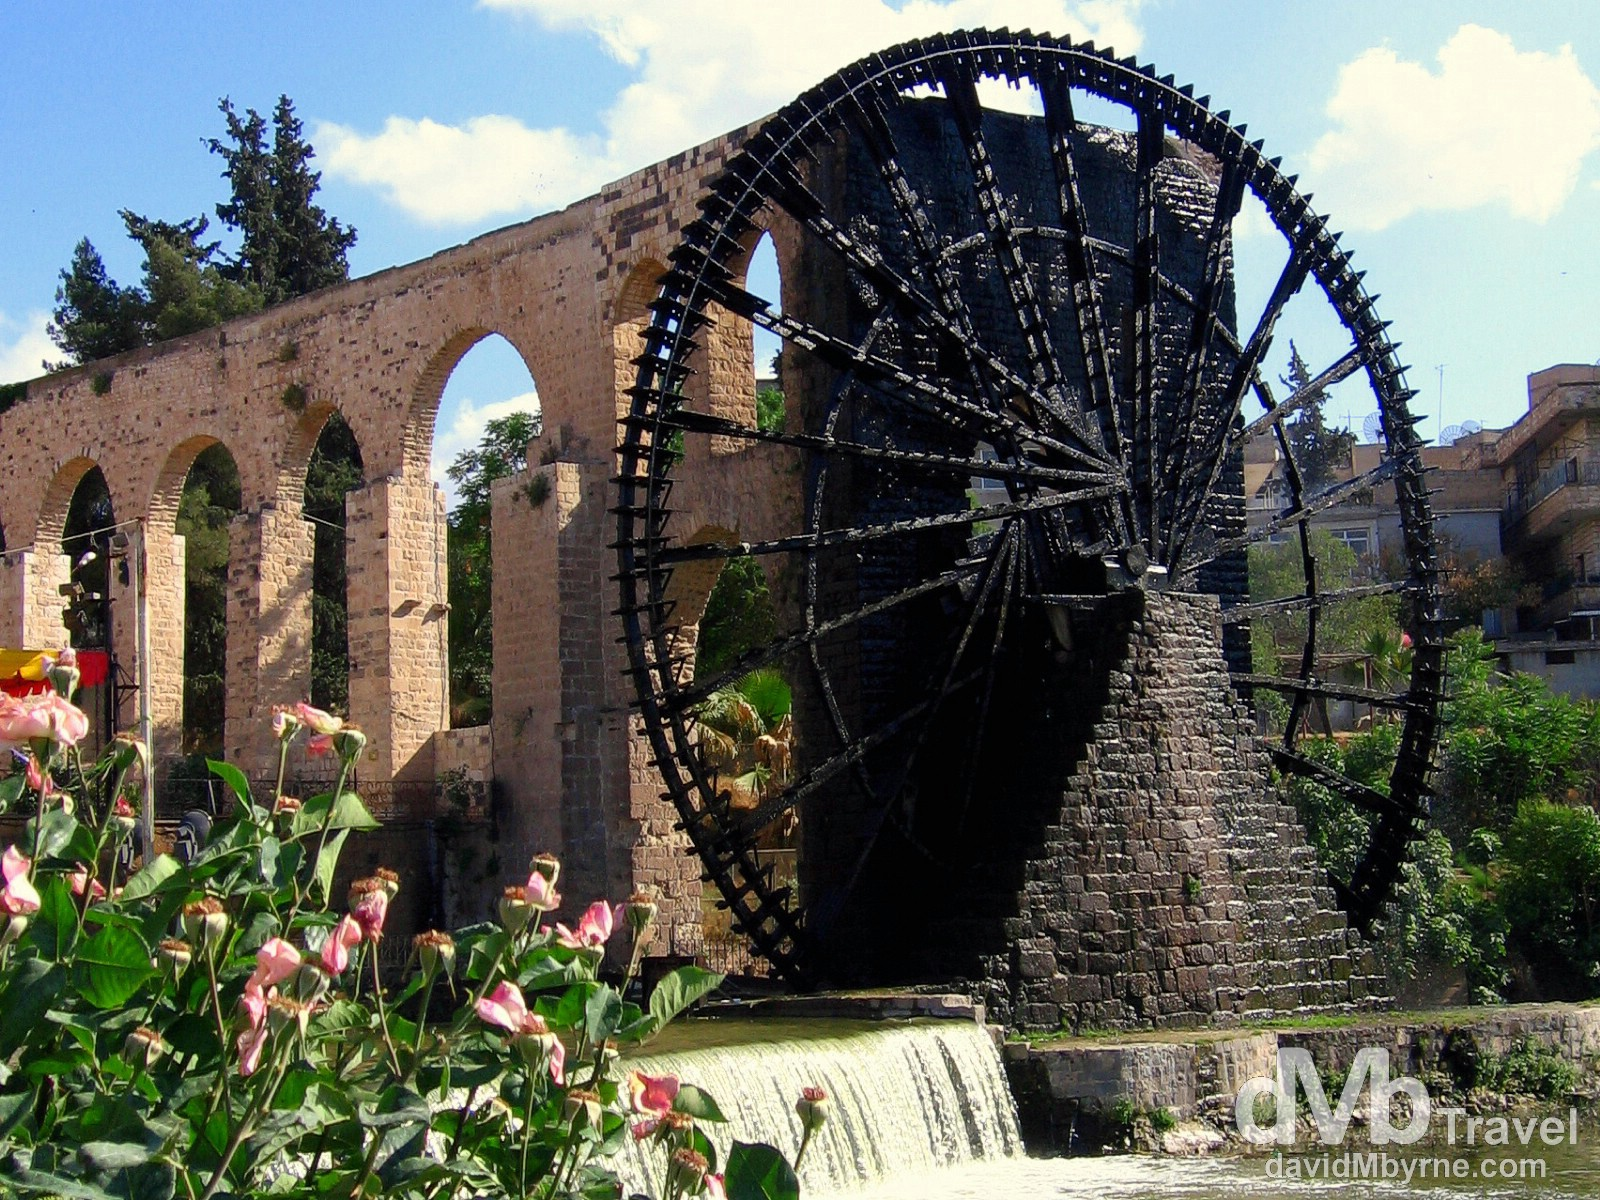 One of the 17 remaining norias ('wheels of pots') on the Orontes river in Hama, Syria. May 6, 2008.